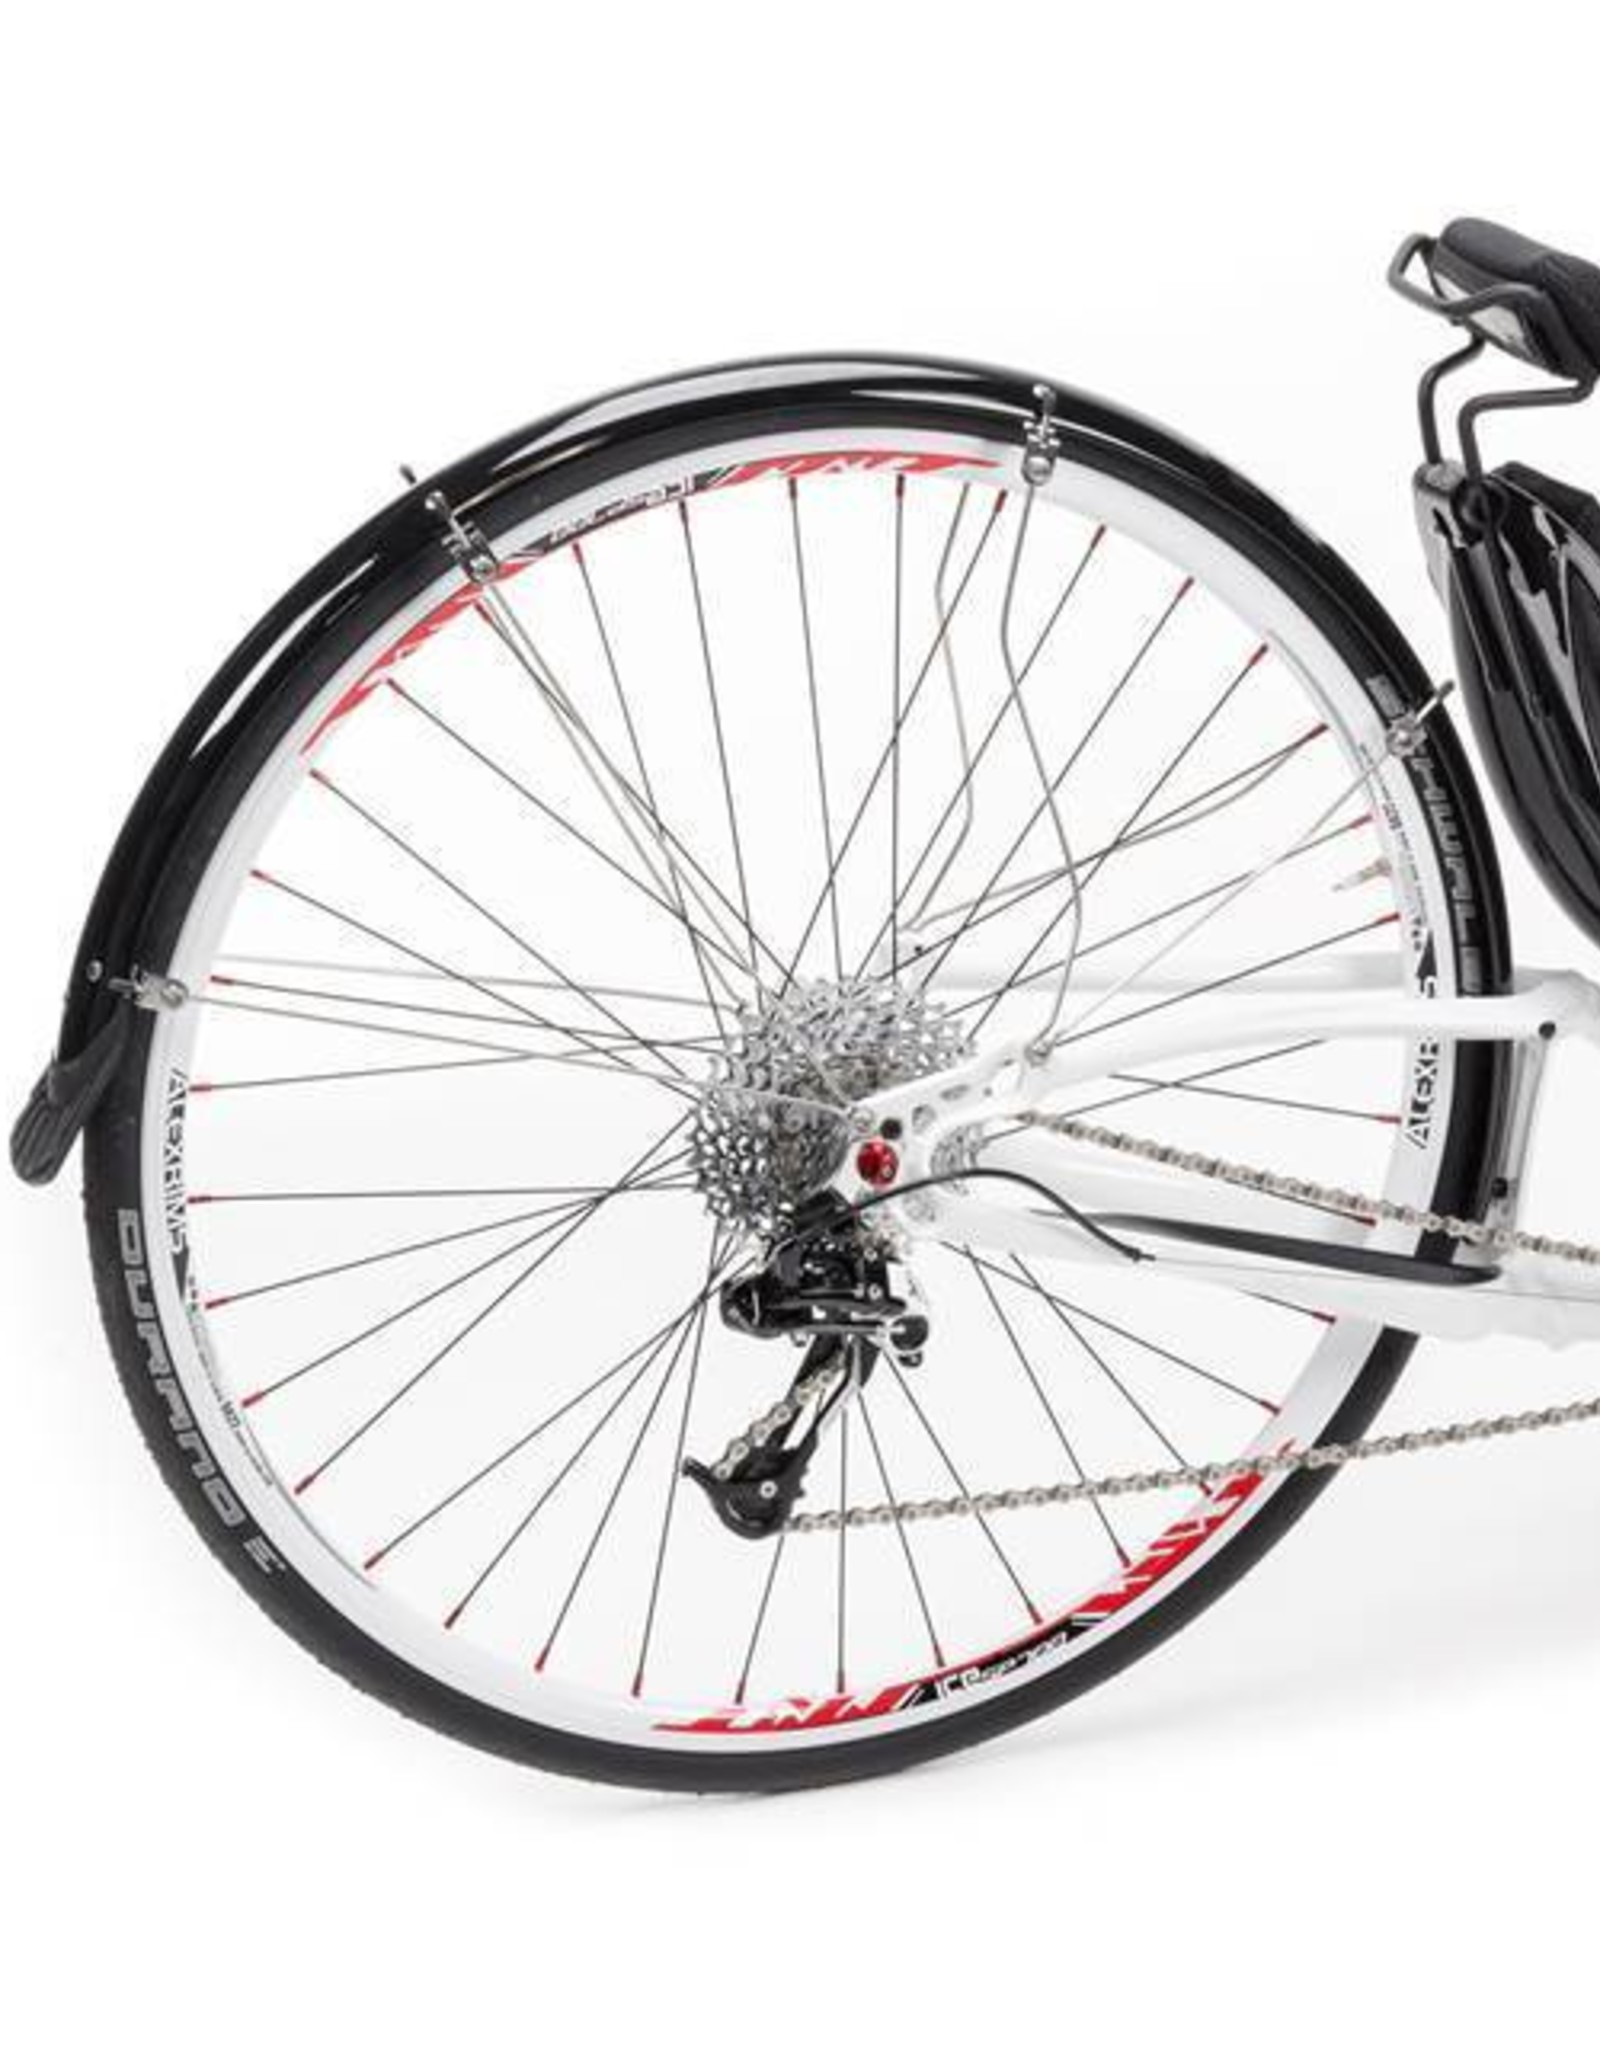 Inspired Cycle Engineering ICE 700c Rear Mudguard